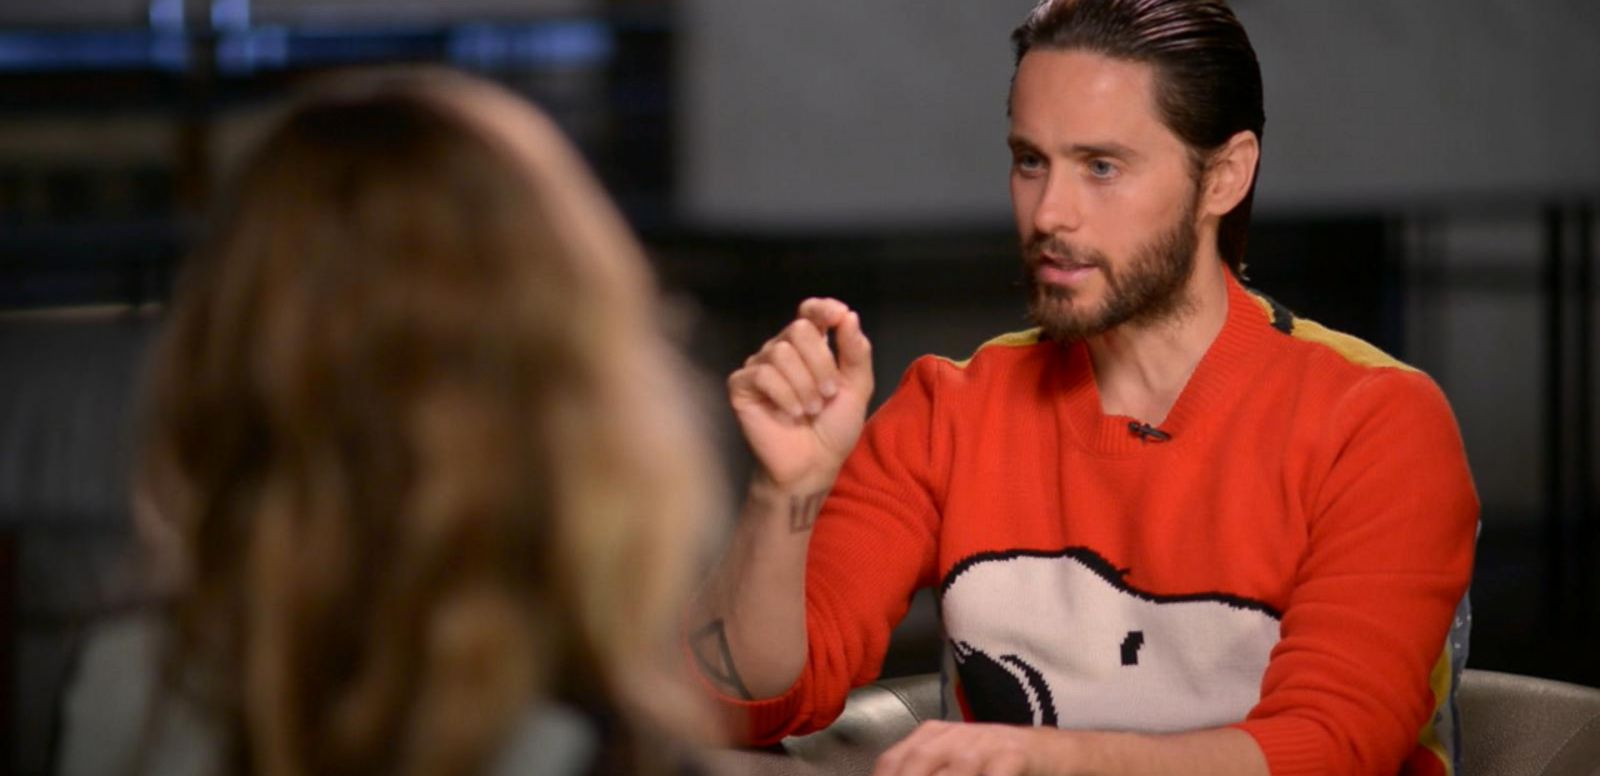 VIDEO: Jared Leto on Playing 'Twisted' Joker in 'Suicide Squad'